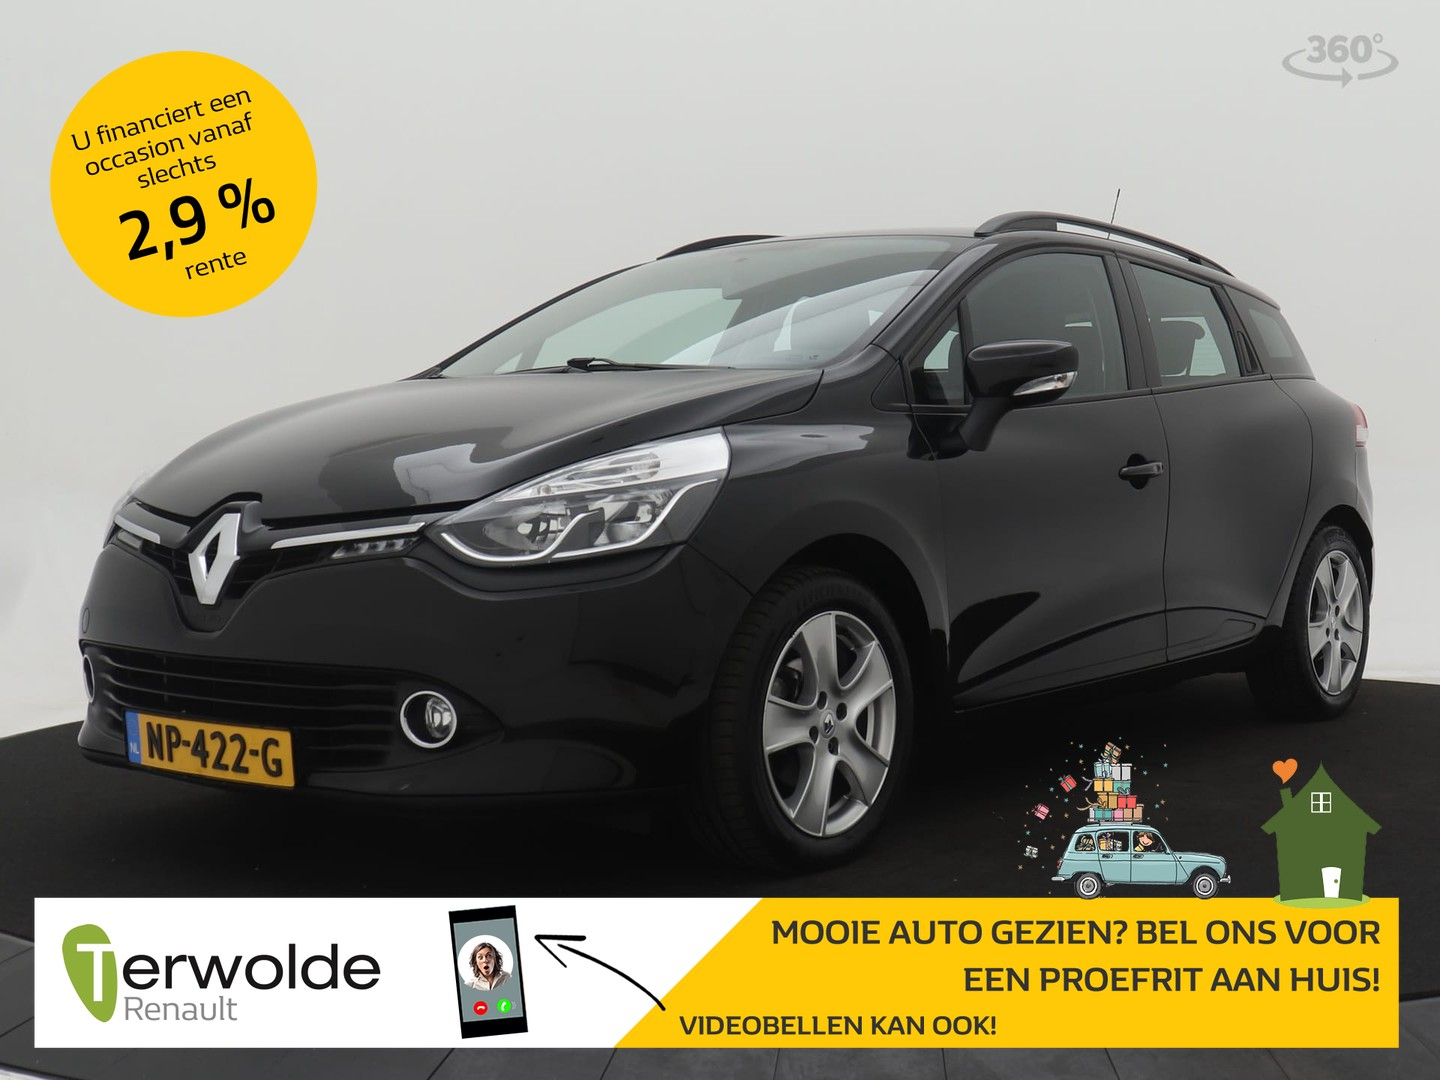 Renault Clio Estate 1.2 120pk expression edc automaat navigatie i airco i cruise control proefrit aan huis is mogelijk!